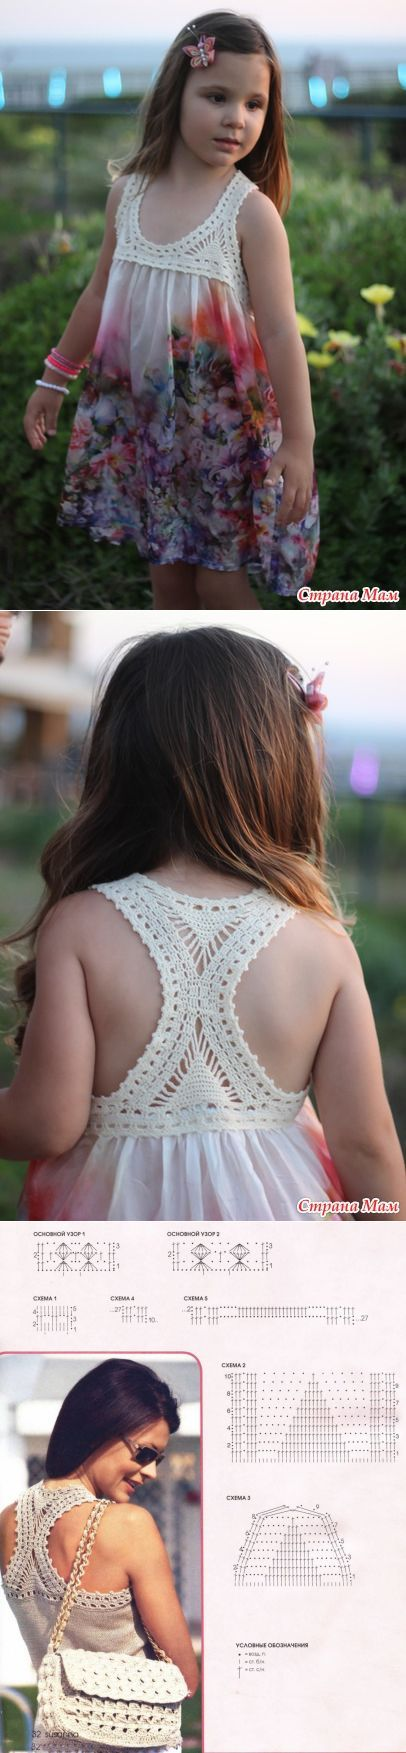 "stranamam.ru [   ""Combined dress Michal - Knitting for children - Country Mom"",   ""Crochet summer dress with fabric skirt"" ] #<br/> # #Crochet #Summer #Dresses,<br/> # #Tissues,<br/> # #Babe,<br/> # #Fashion #Infant,<br/> # #Crochet,<br/> # #Flower,<br/> # #Sewing<br/>"